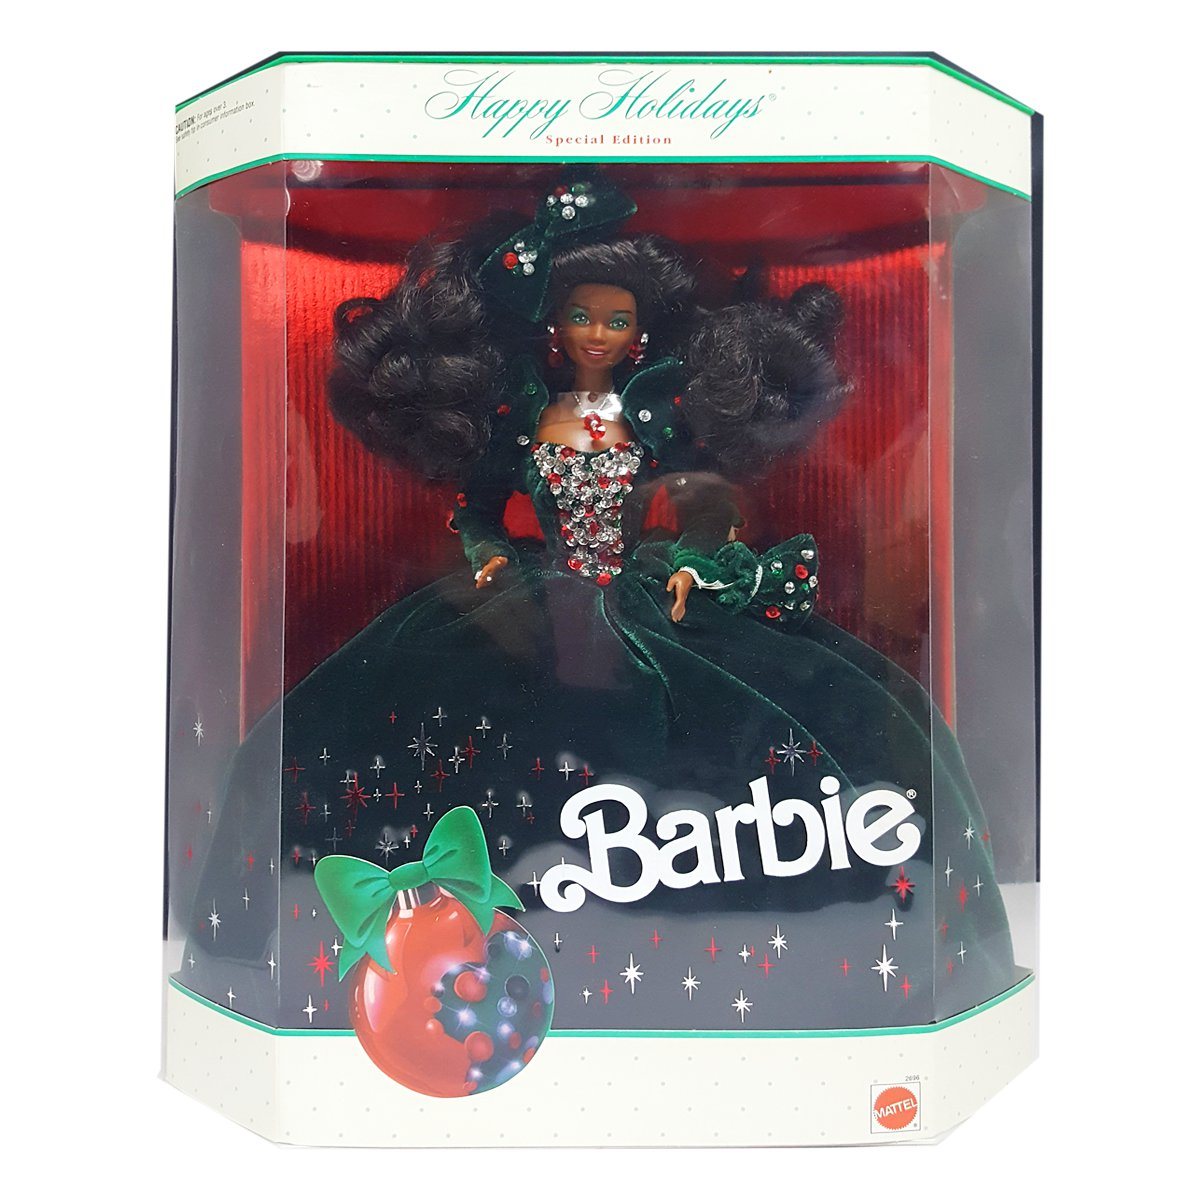 1991 Happy Holidays Barbie African American Special Edition Barbie Doll by Mattel